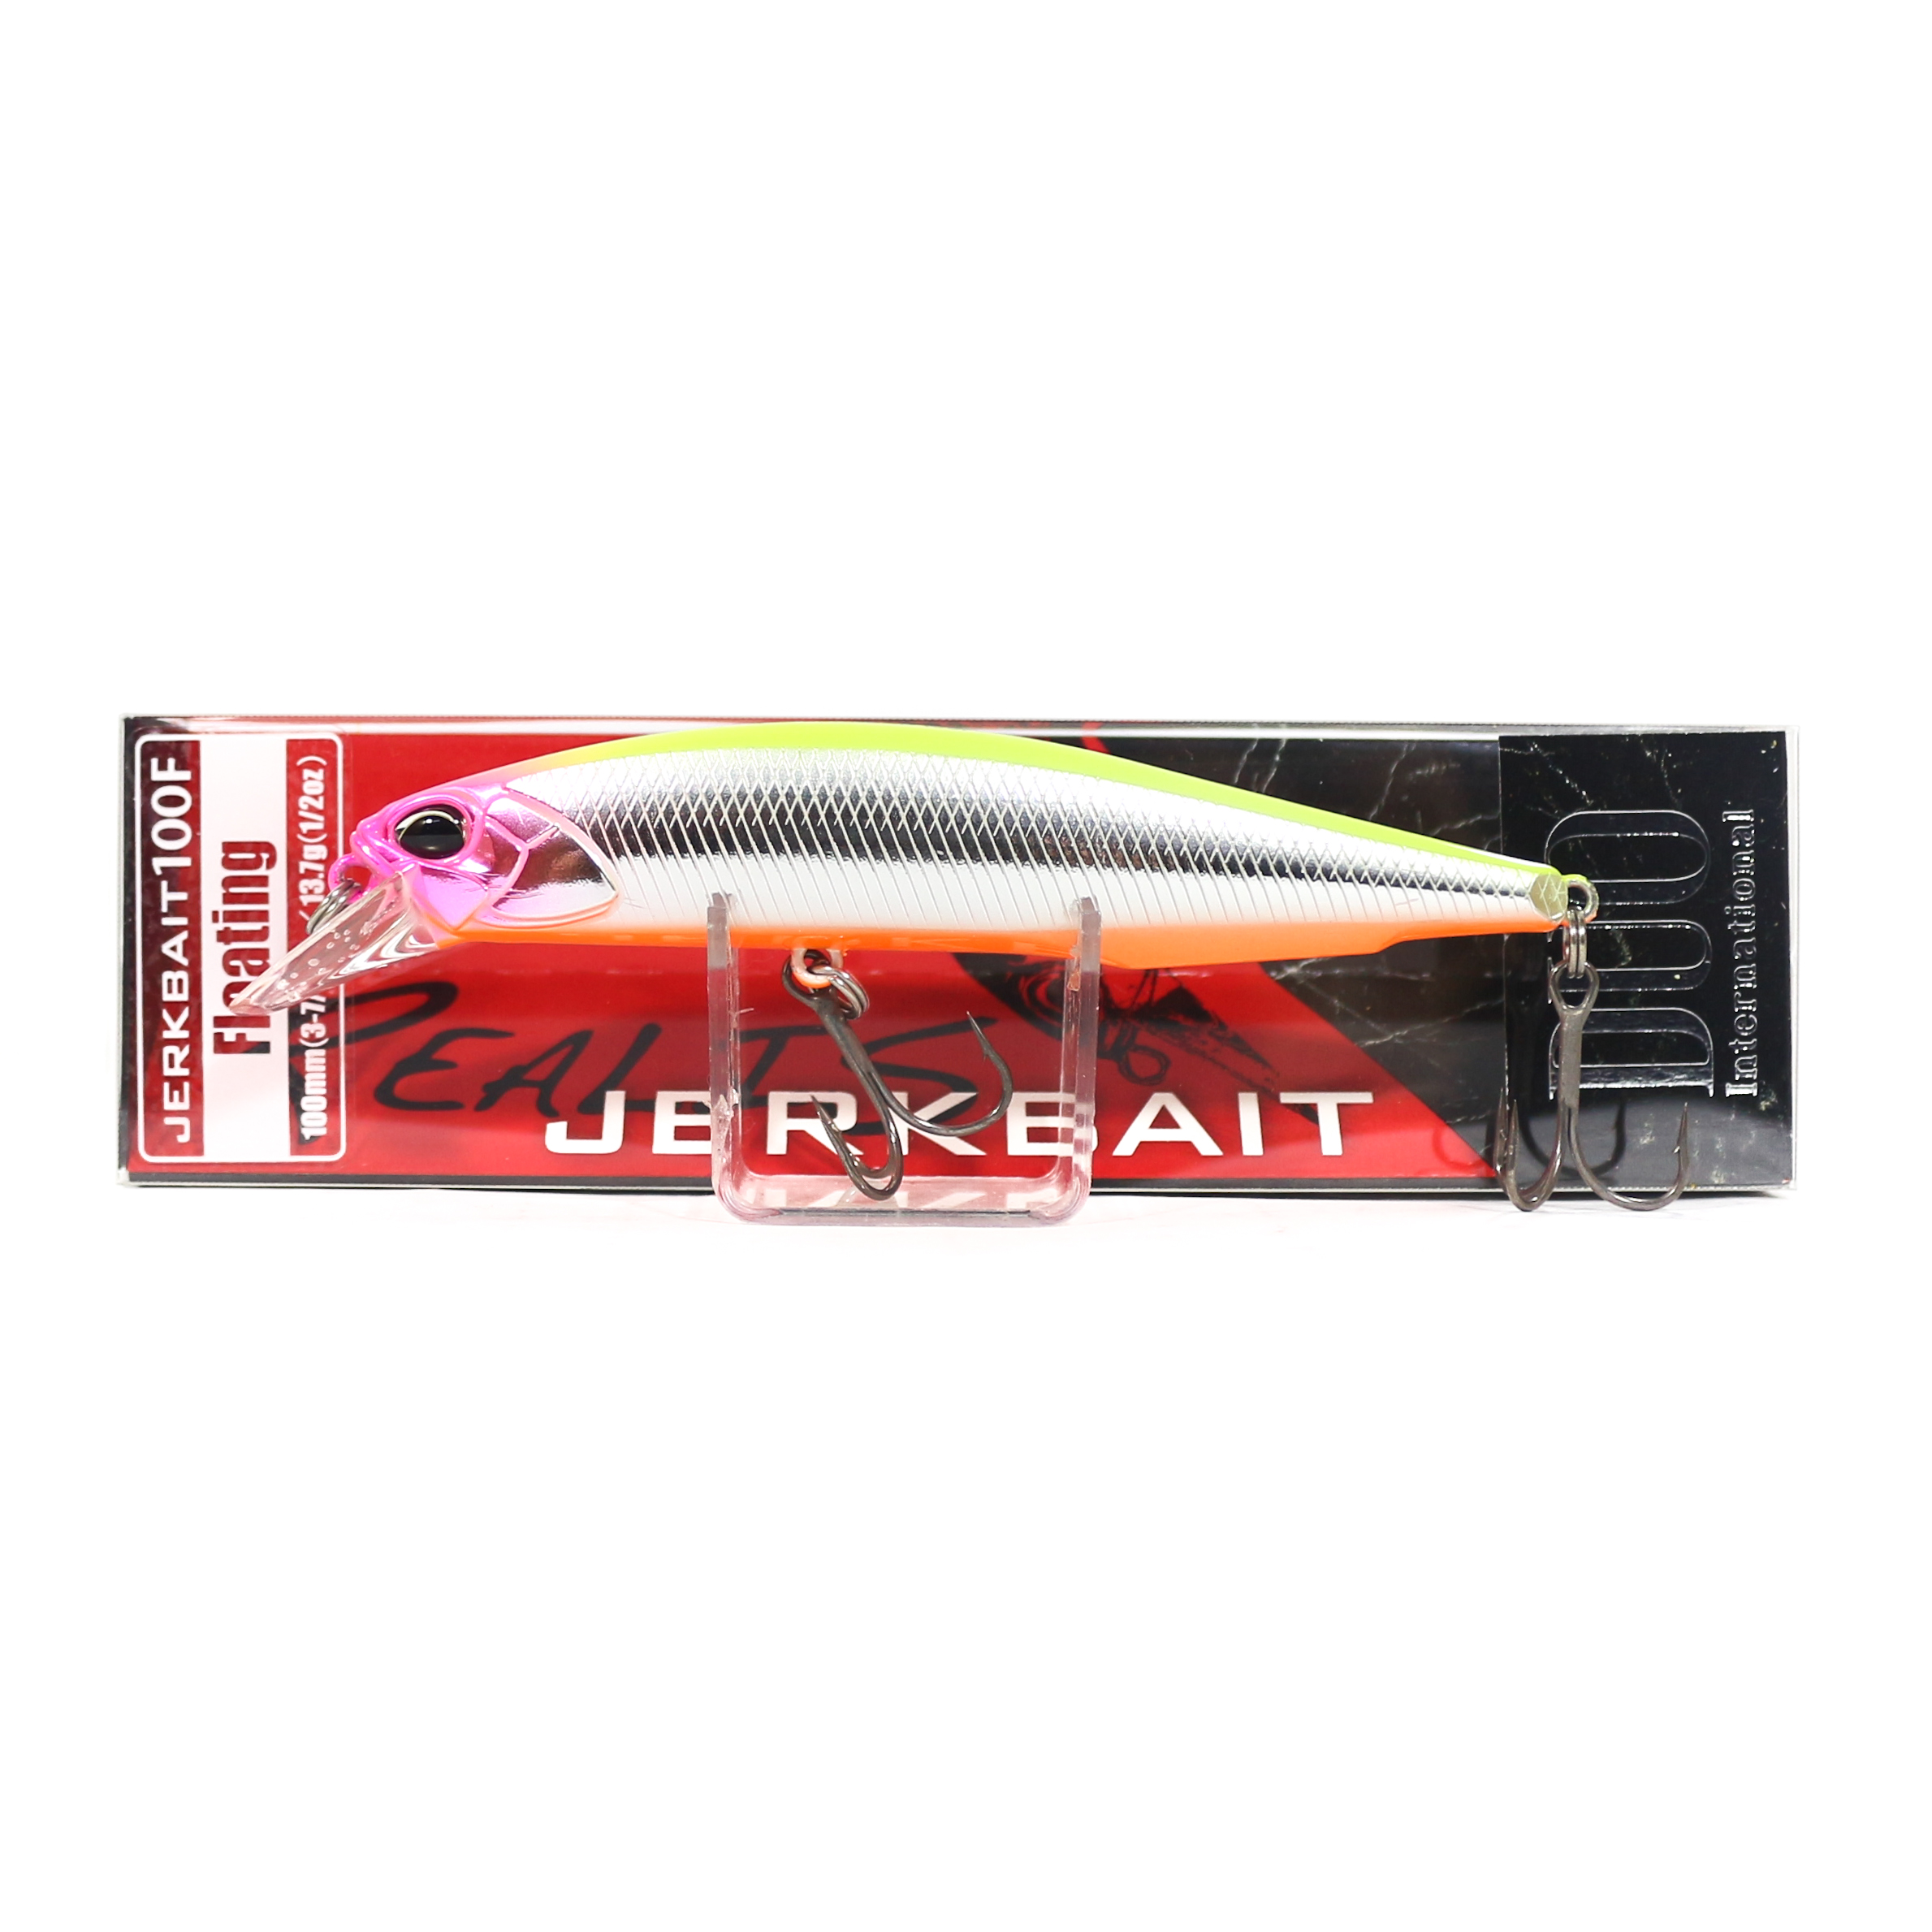 Duo Realis Jerkbait 100F Floating Lure ASA3223 (1749)